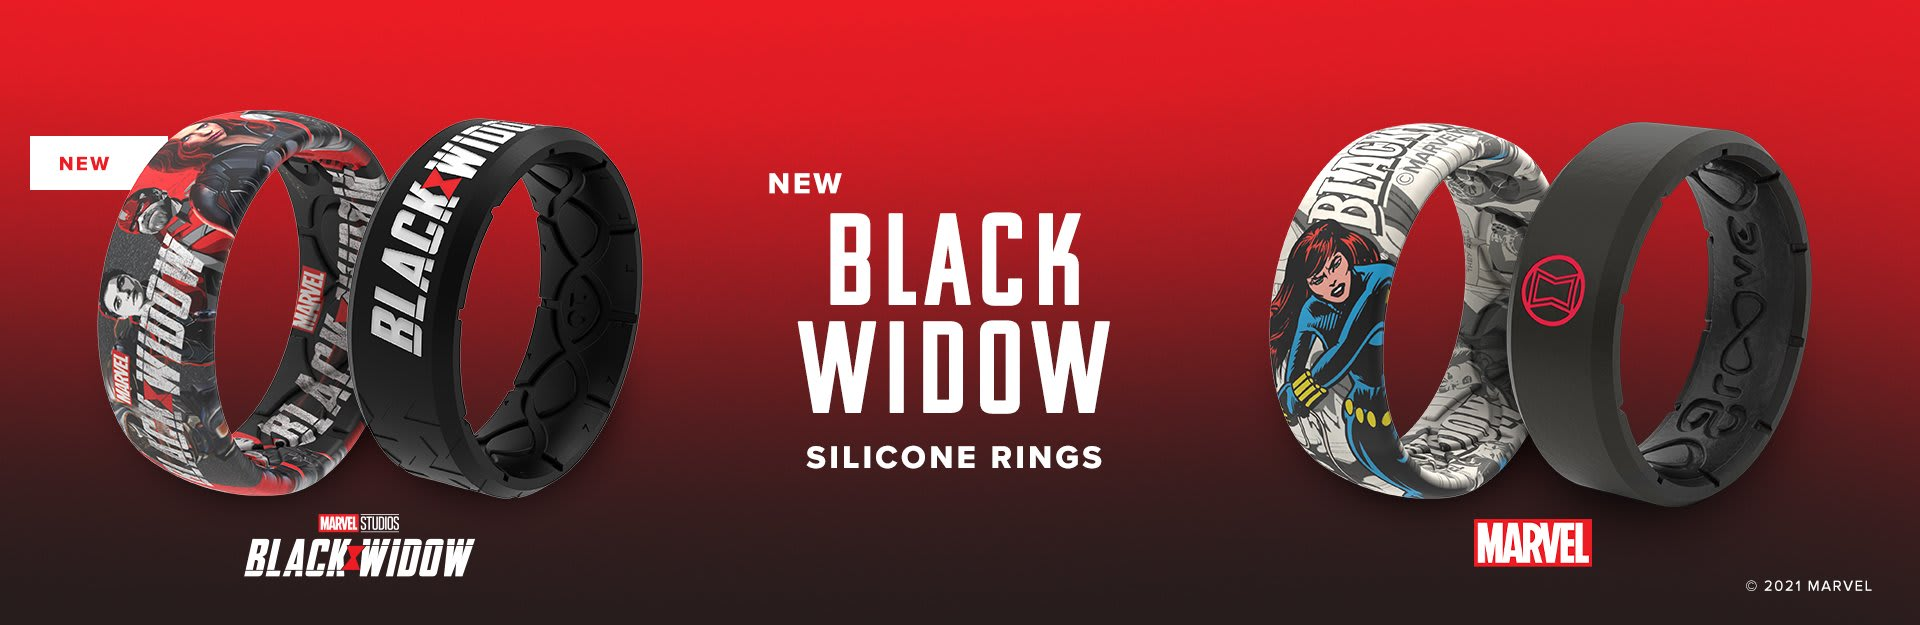 Black Widow Silicone Rings